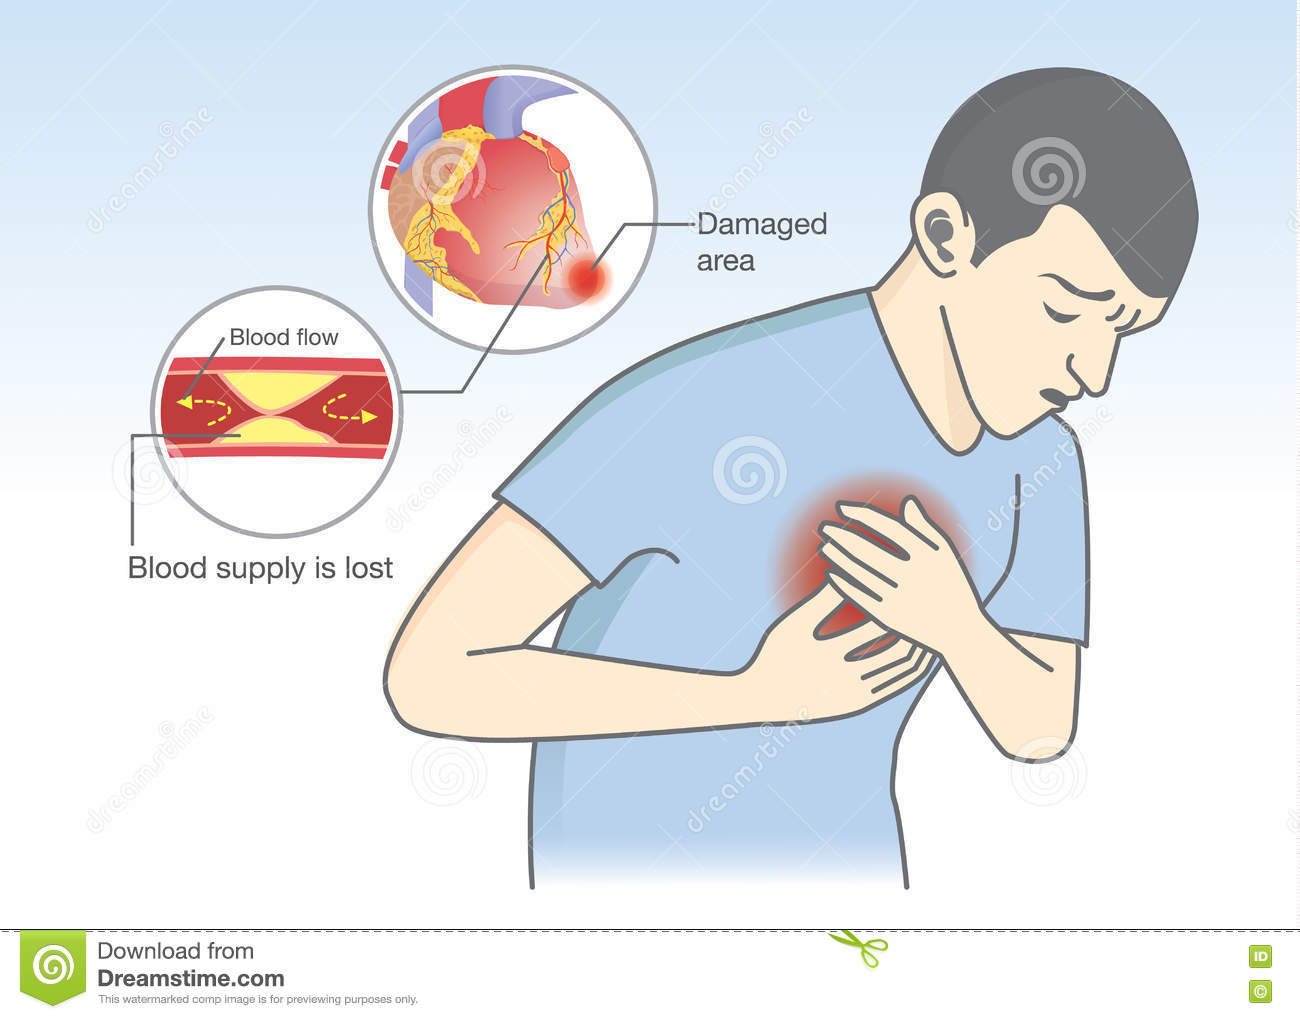 Cause of heart attack symptoms from blood flow get blocked stock cause of heart attack symptoms from blood flow get blocked ccuart Image collections